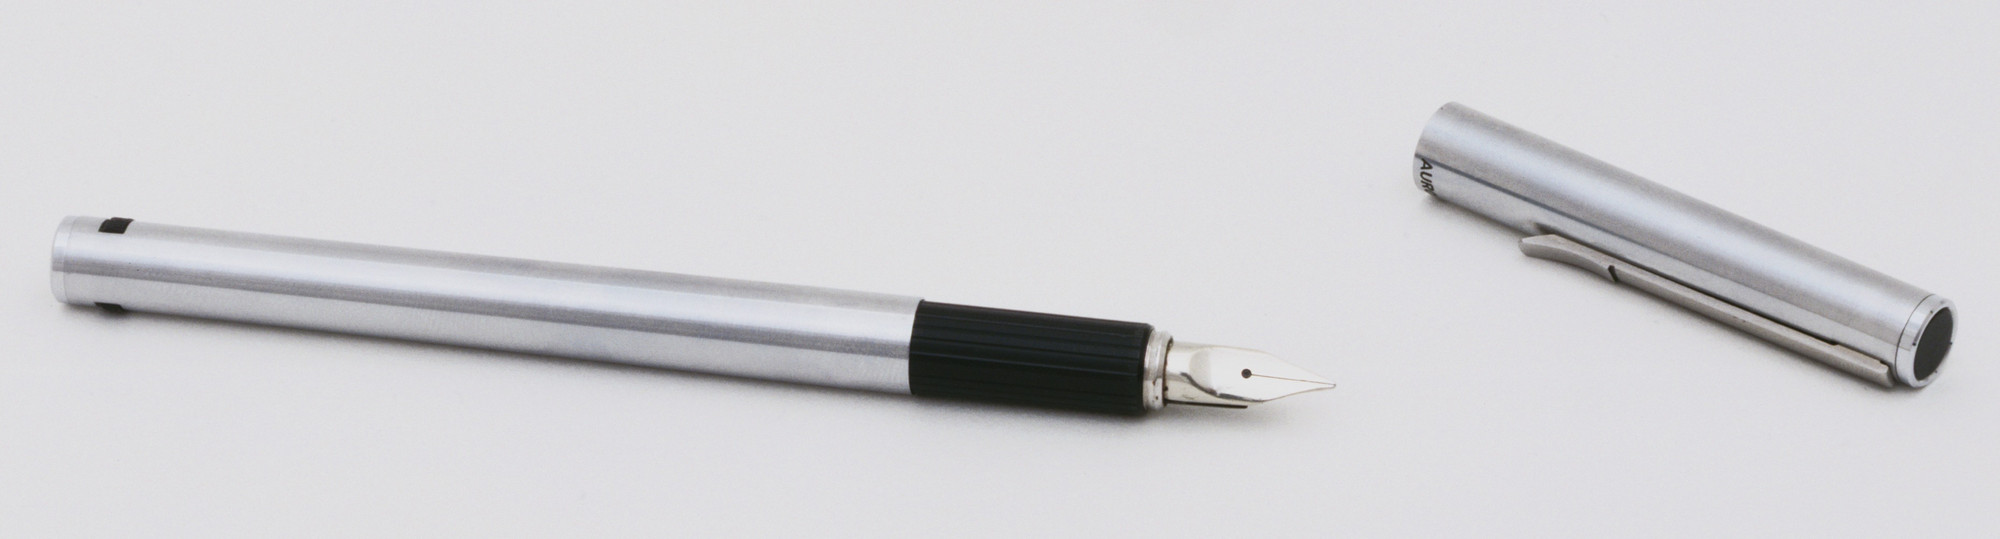 Marco Zanuso. Hastil Fountain Pen. 1969